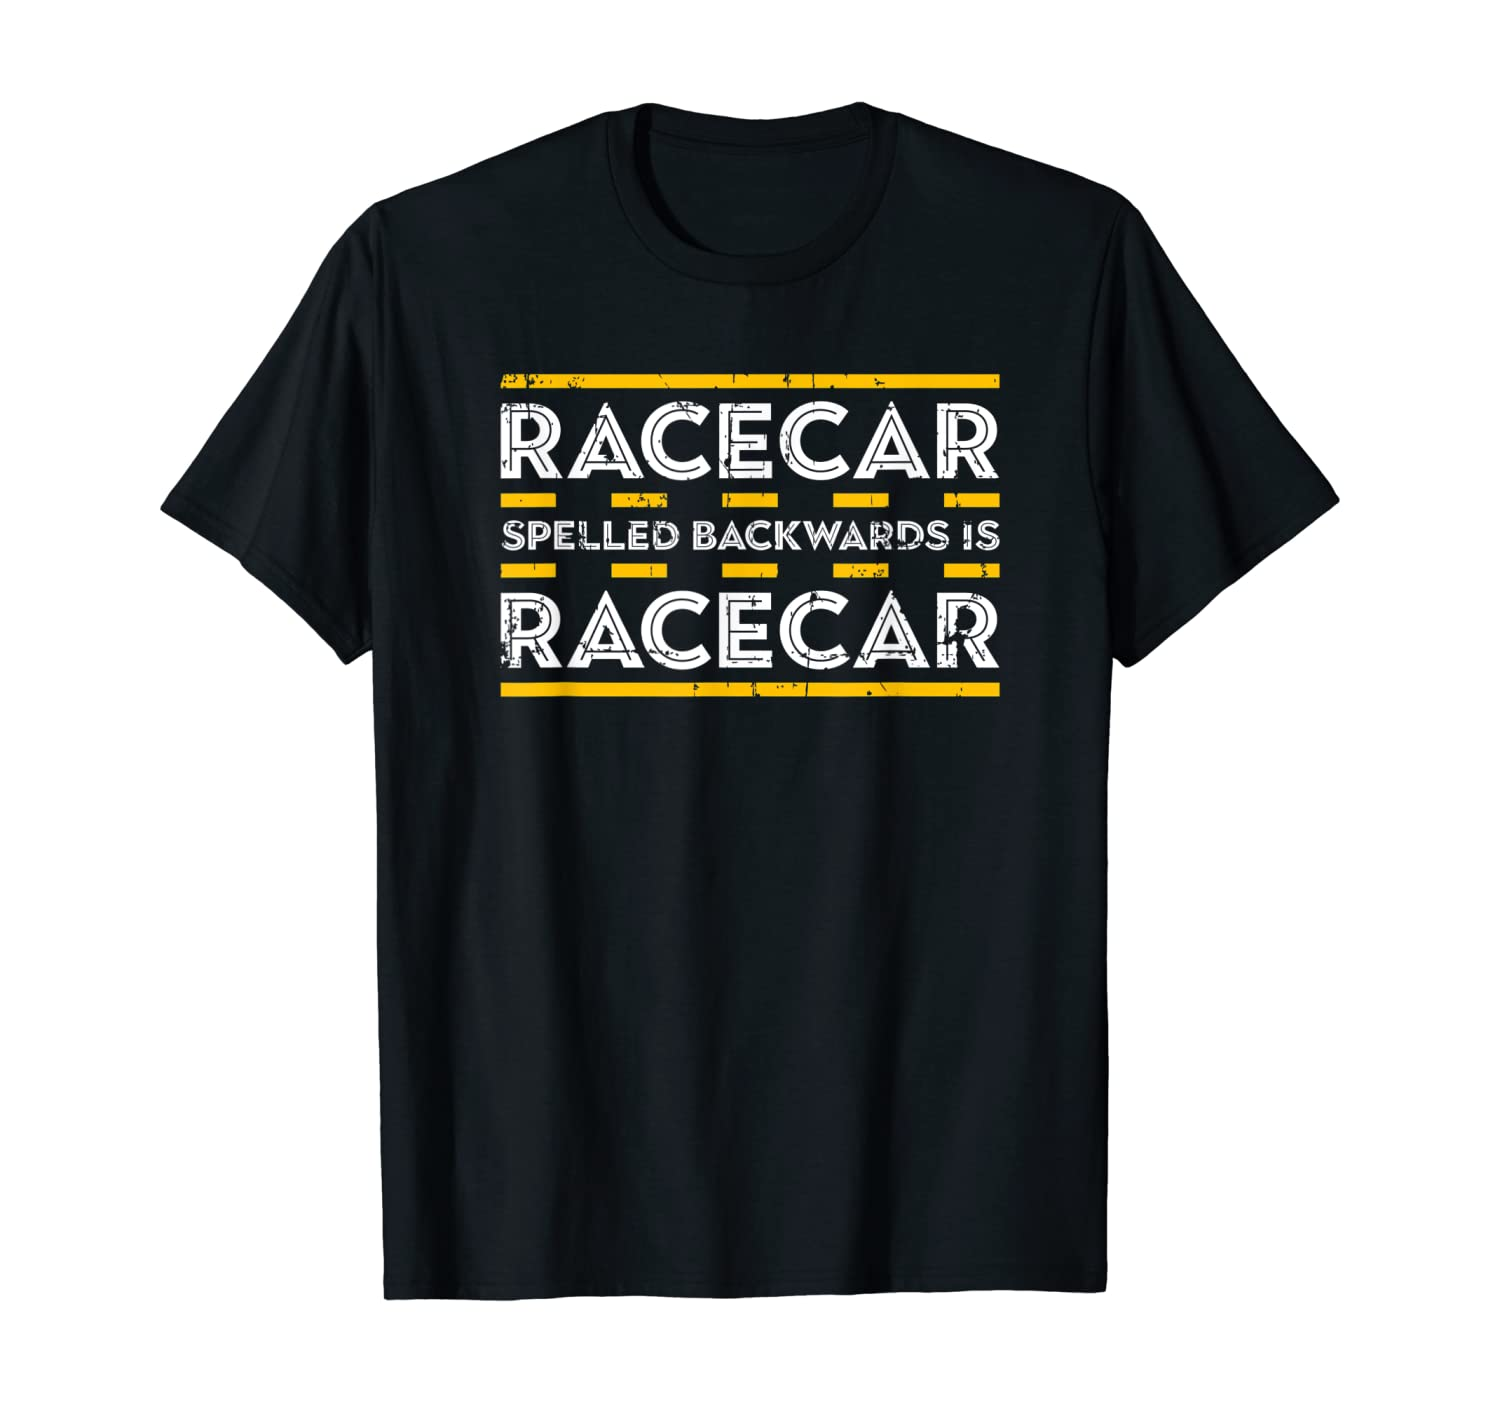 Car Racing Gifts Racing Shirt Racecar Spelled Backwards T-Shirt